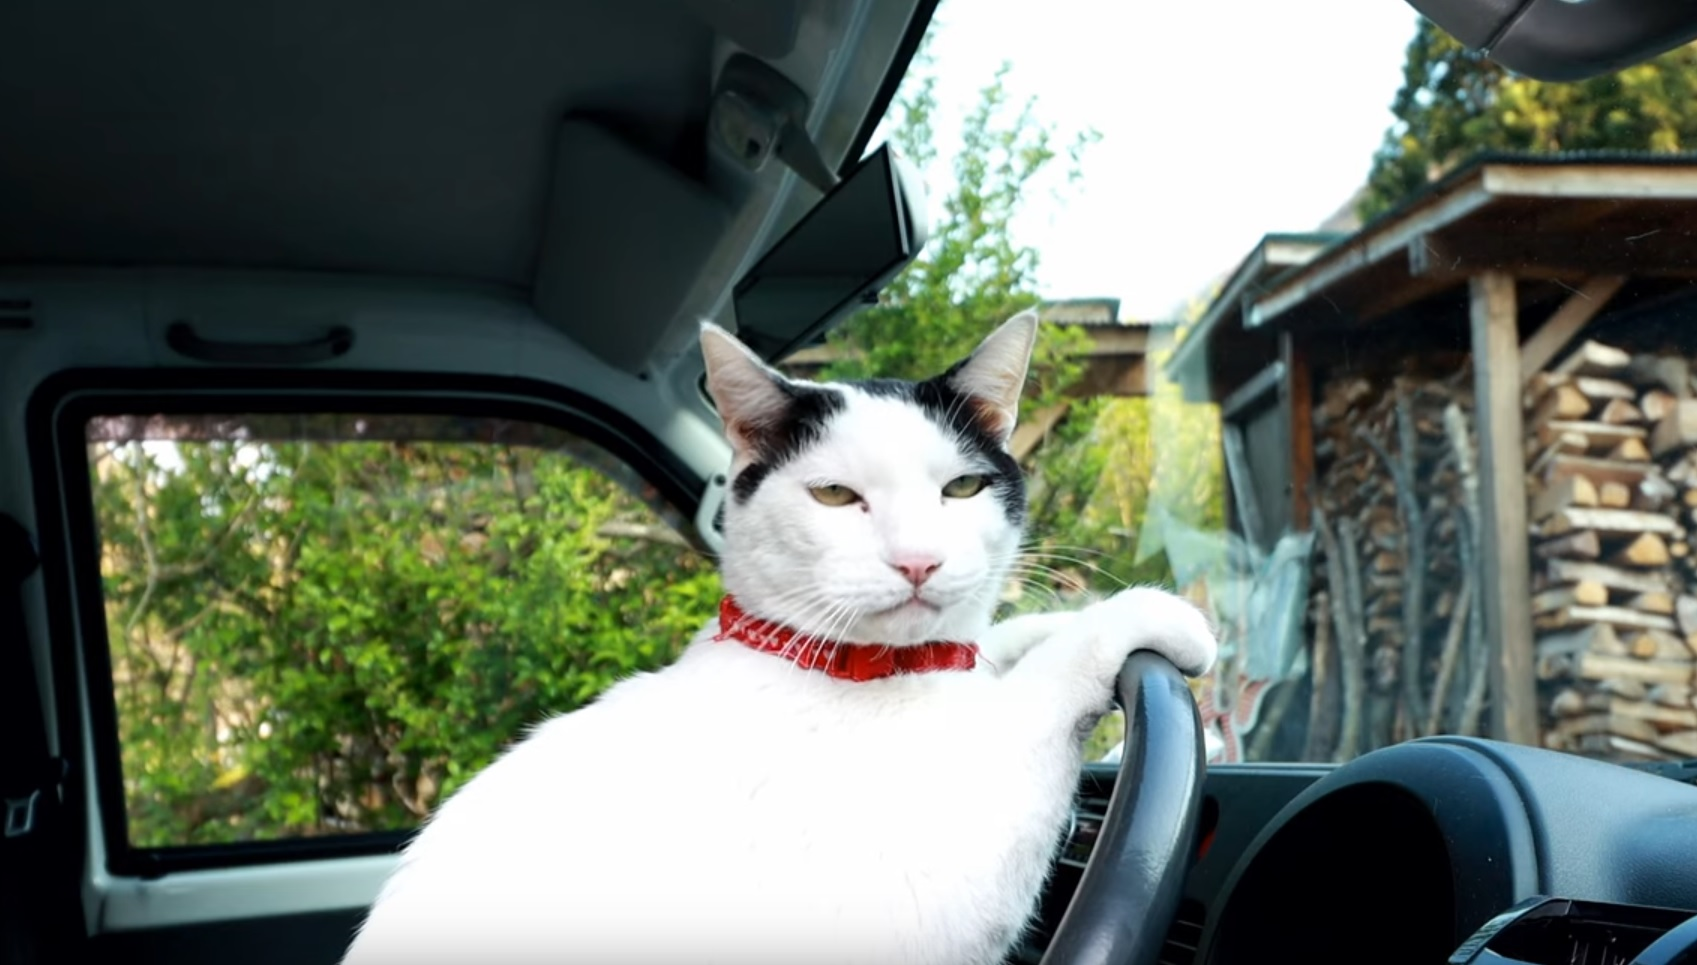 Kitty Chilling In The Car